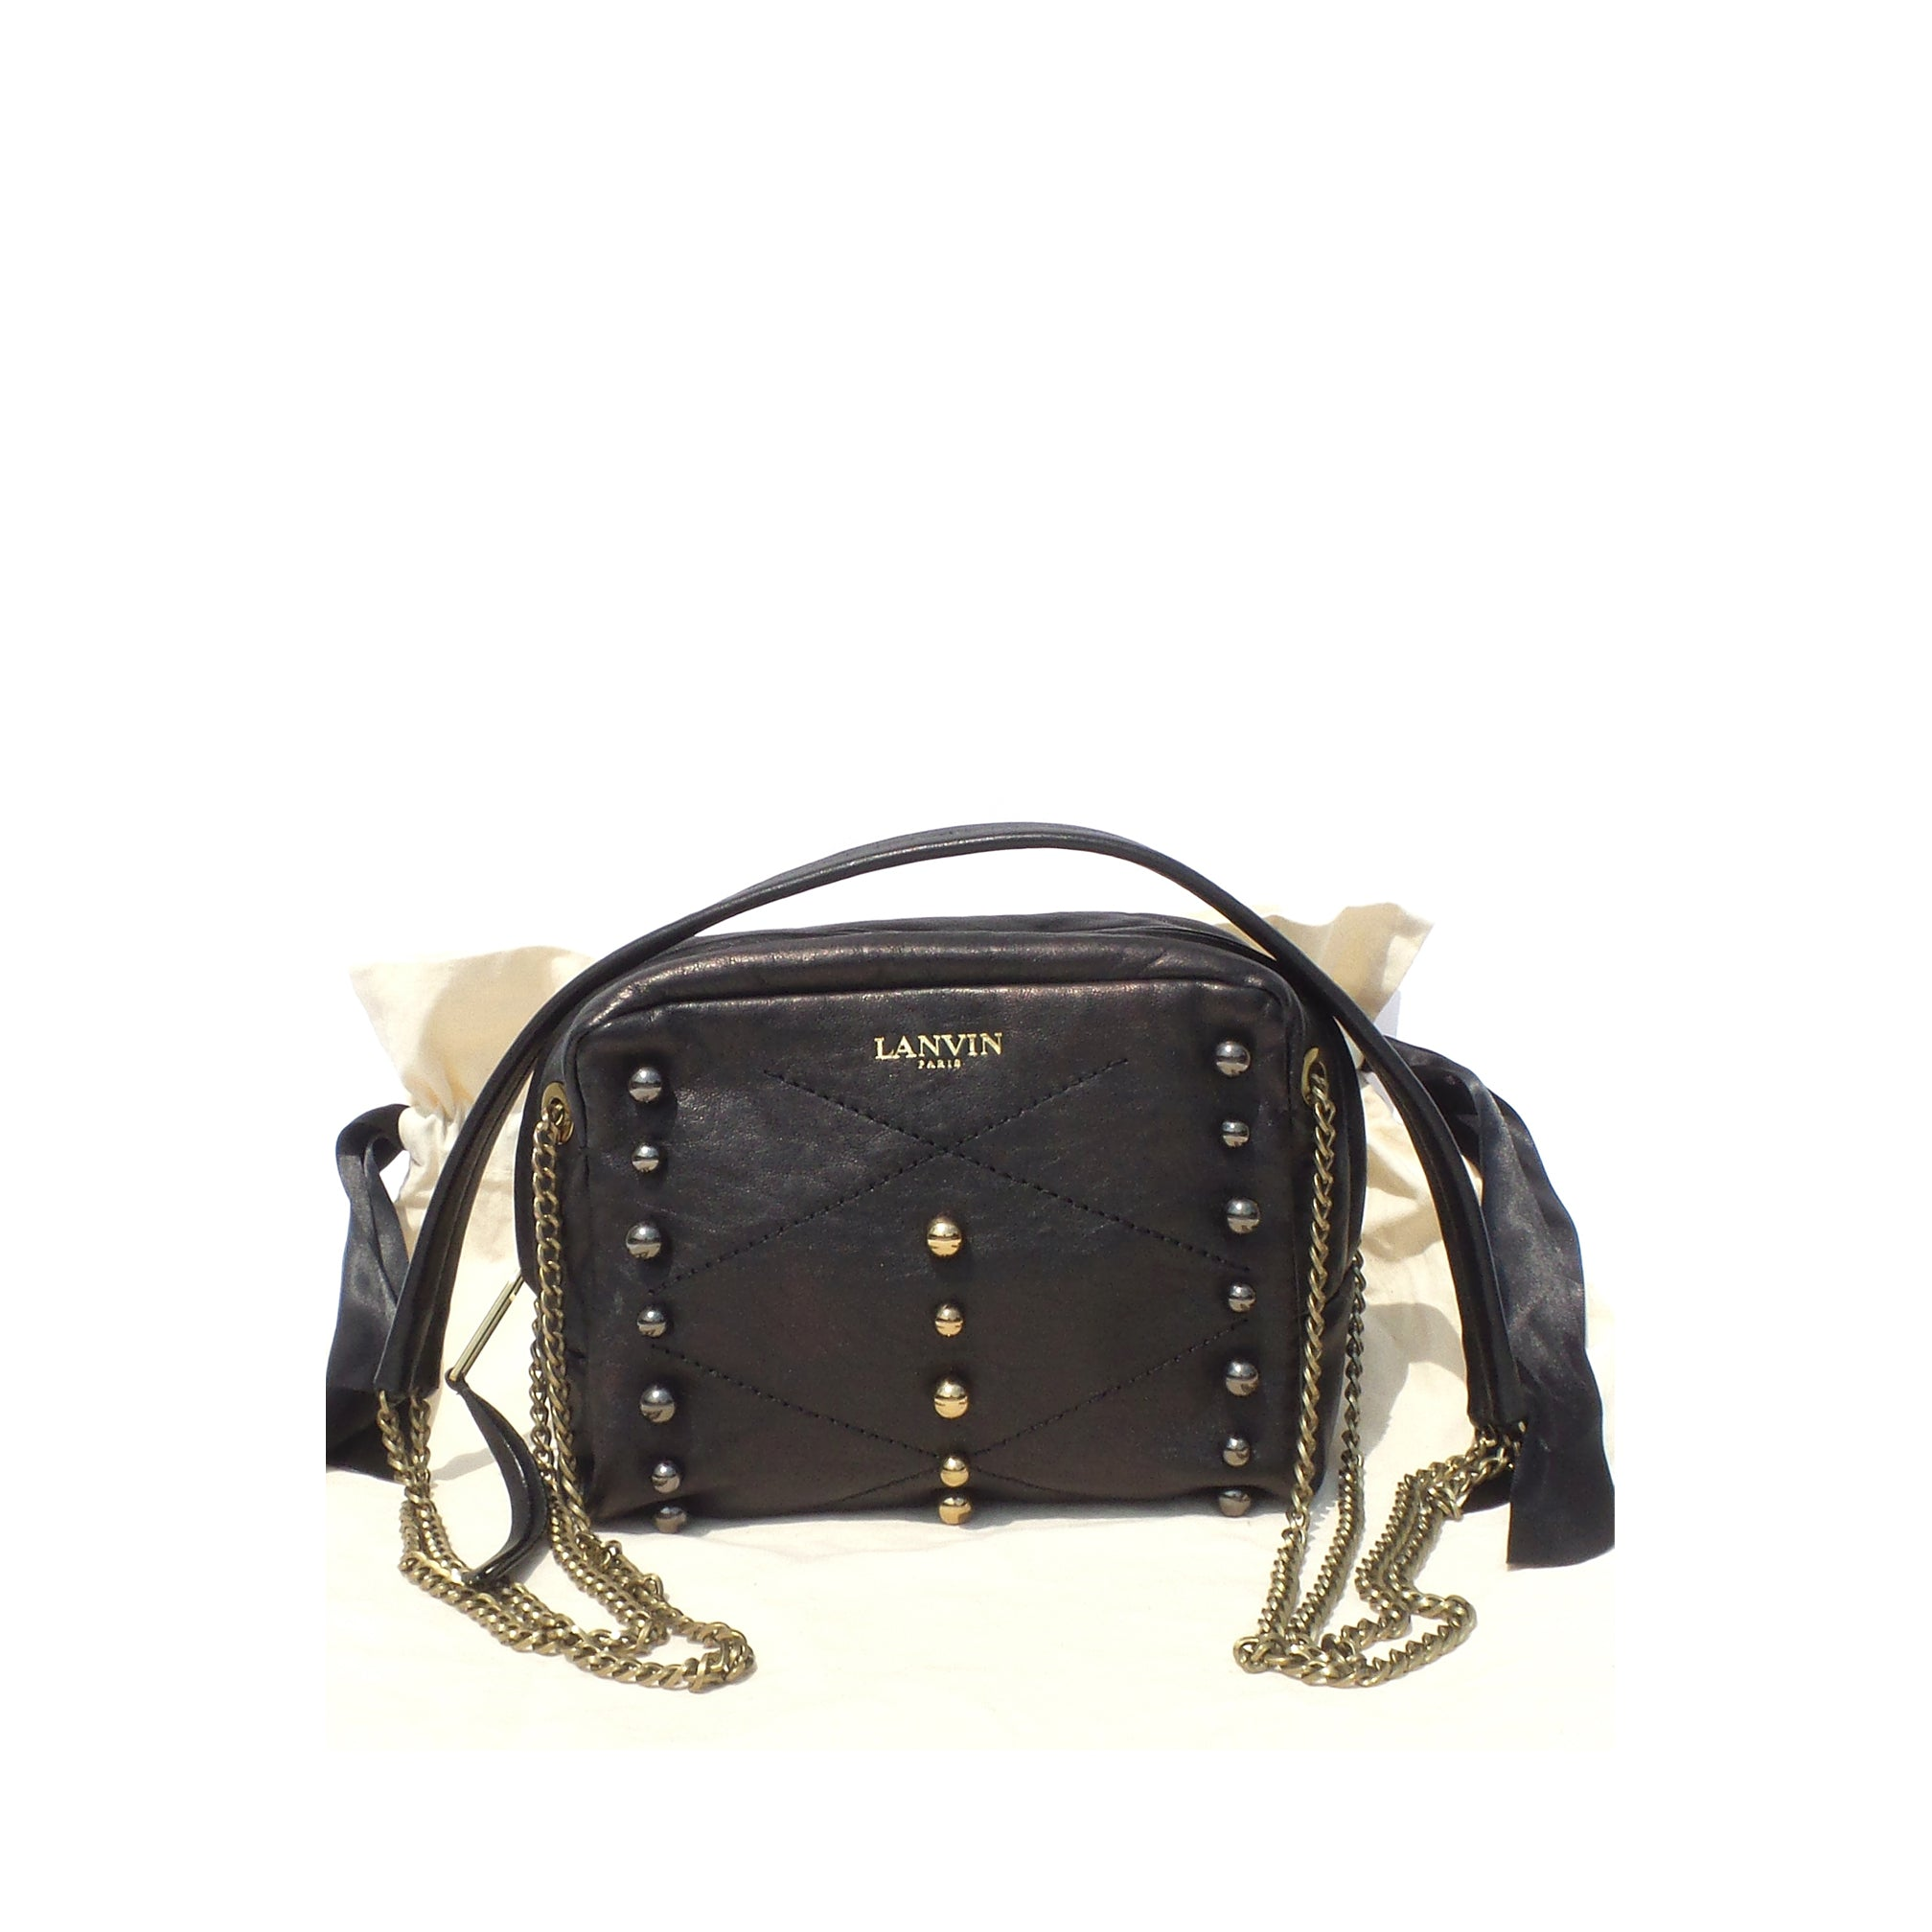 'Sold' LANVIN Black Lambskin Leather Mini Sugar Studded Quilted Stitch Crossbody Bag EC